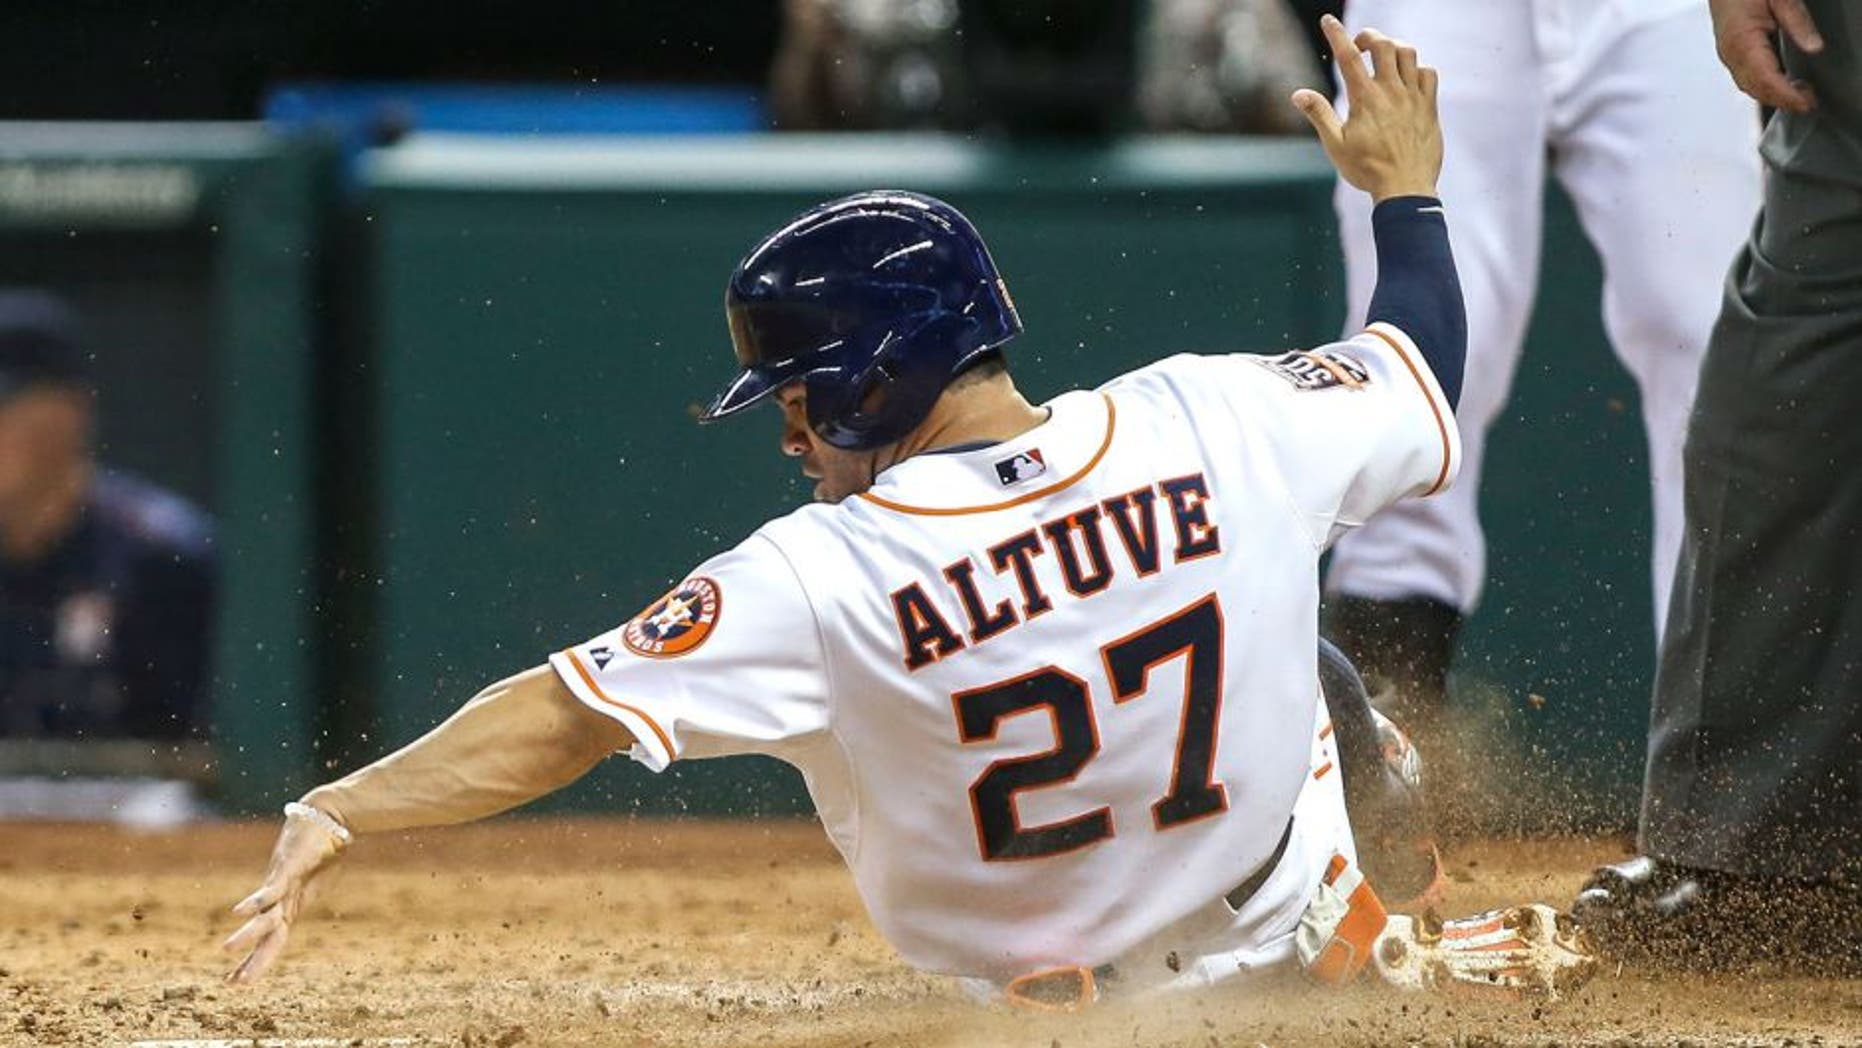 Jun 25, 2015; Houston, TX, USA; Houston Astros second baseman Jose Altuve (27) touches home plate as he scores a run during the fourth inning against the New York Yankees at Minute Maid Park. Mandatory Credit: Troy Taormina-USA TODAY Sports